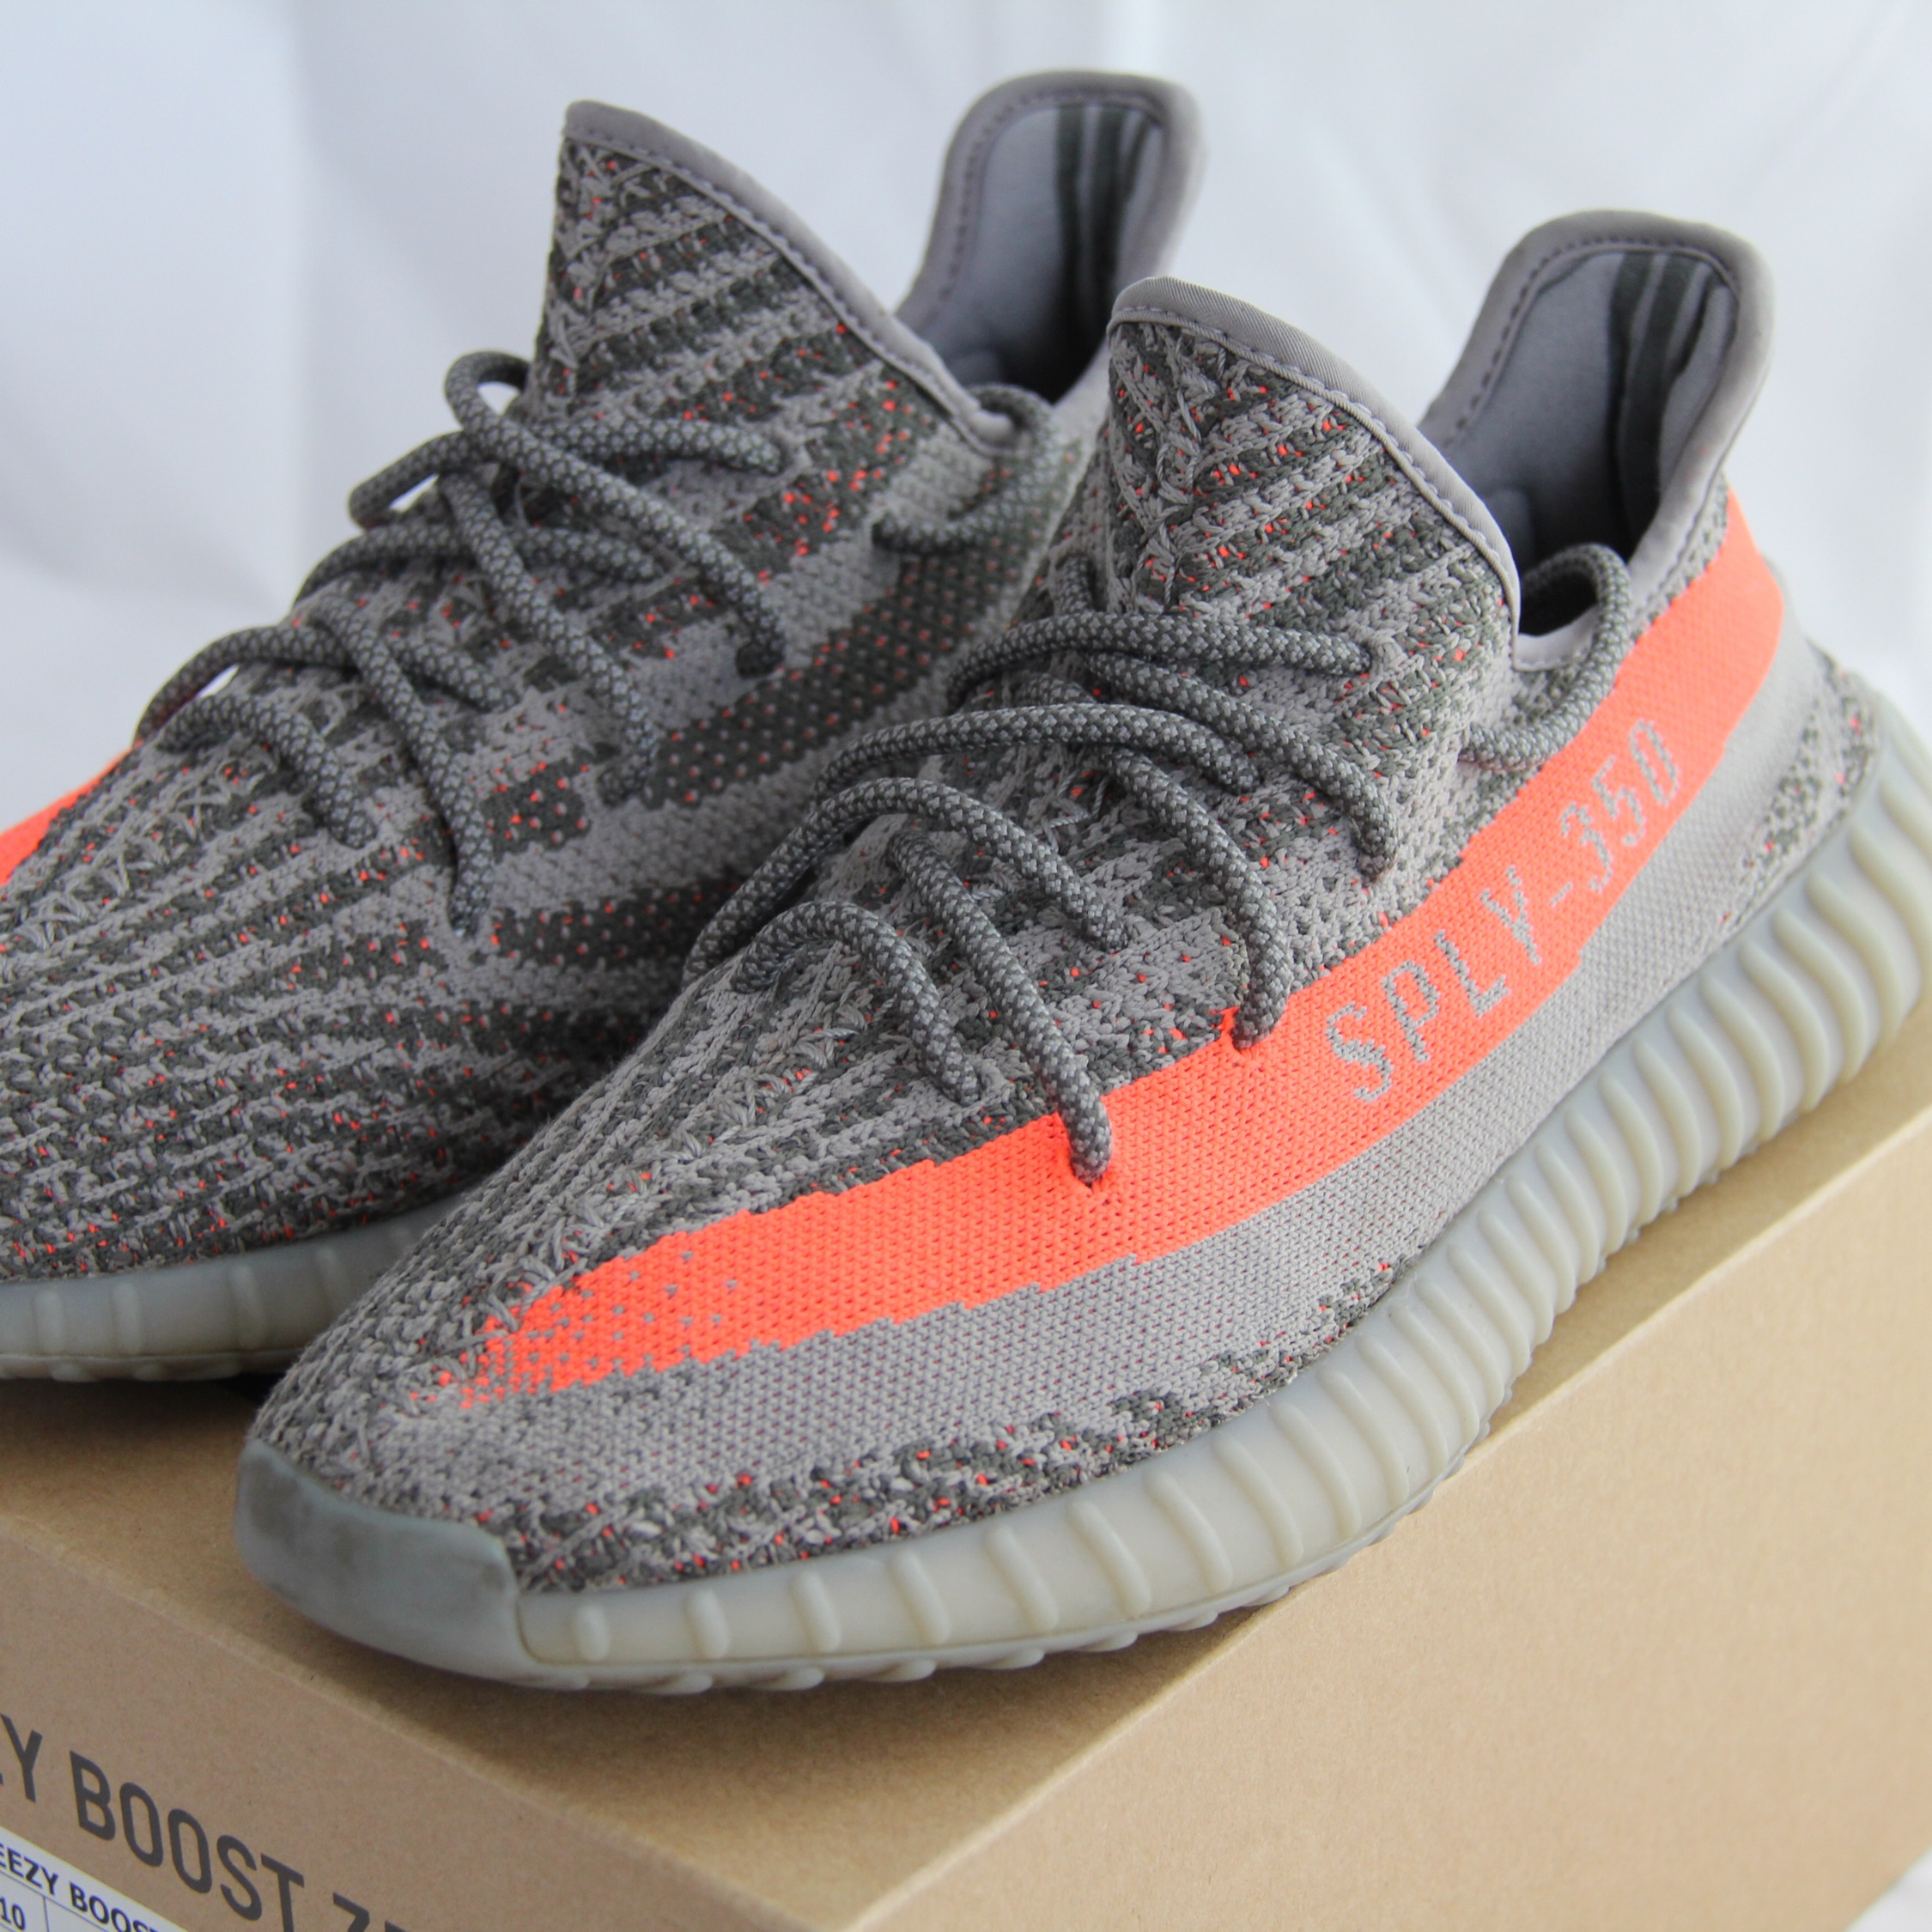 yeezy beluga 2.0 box sticker